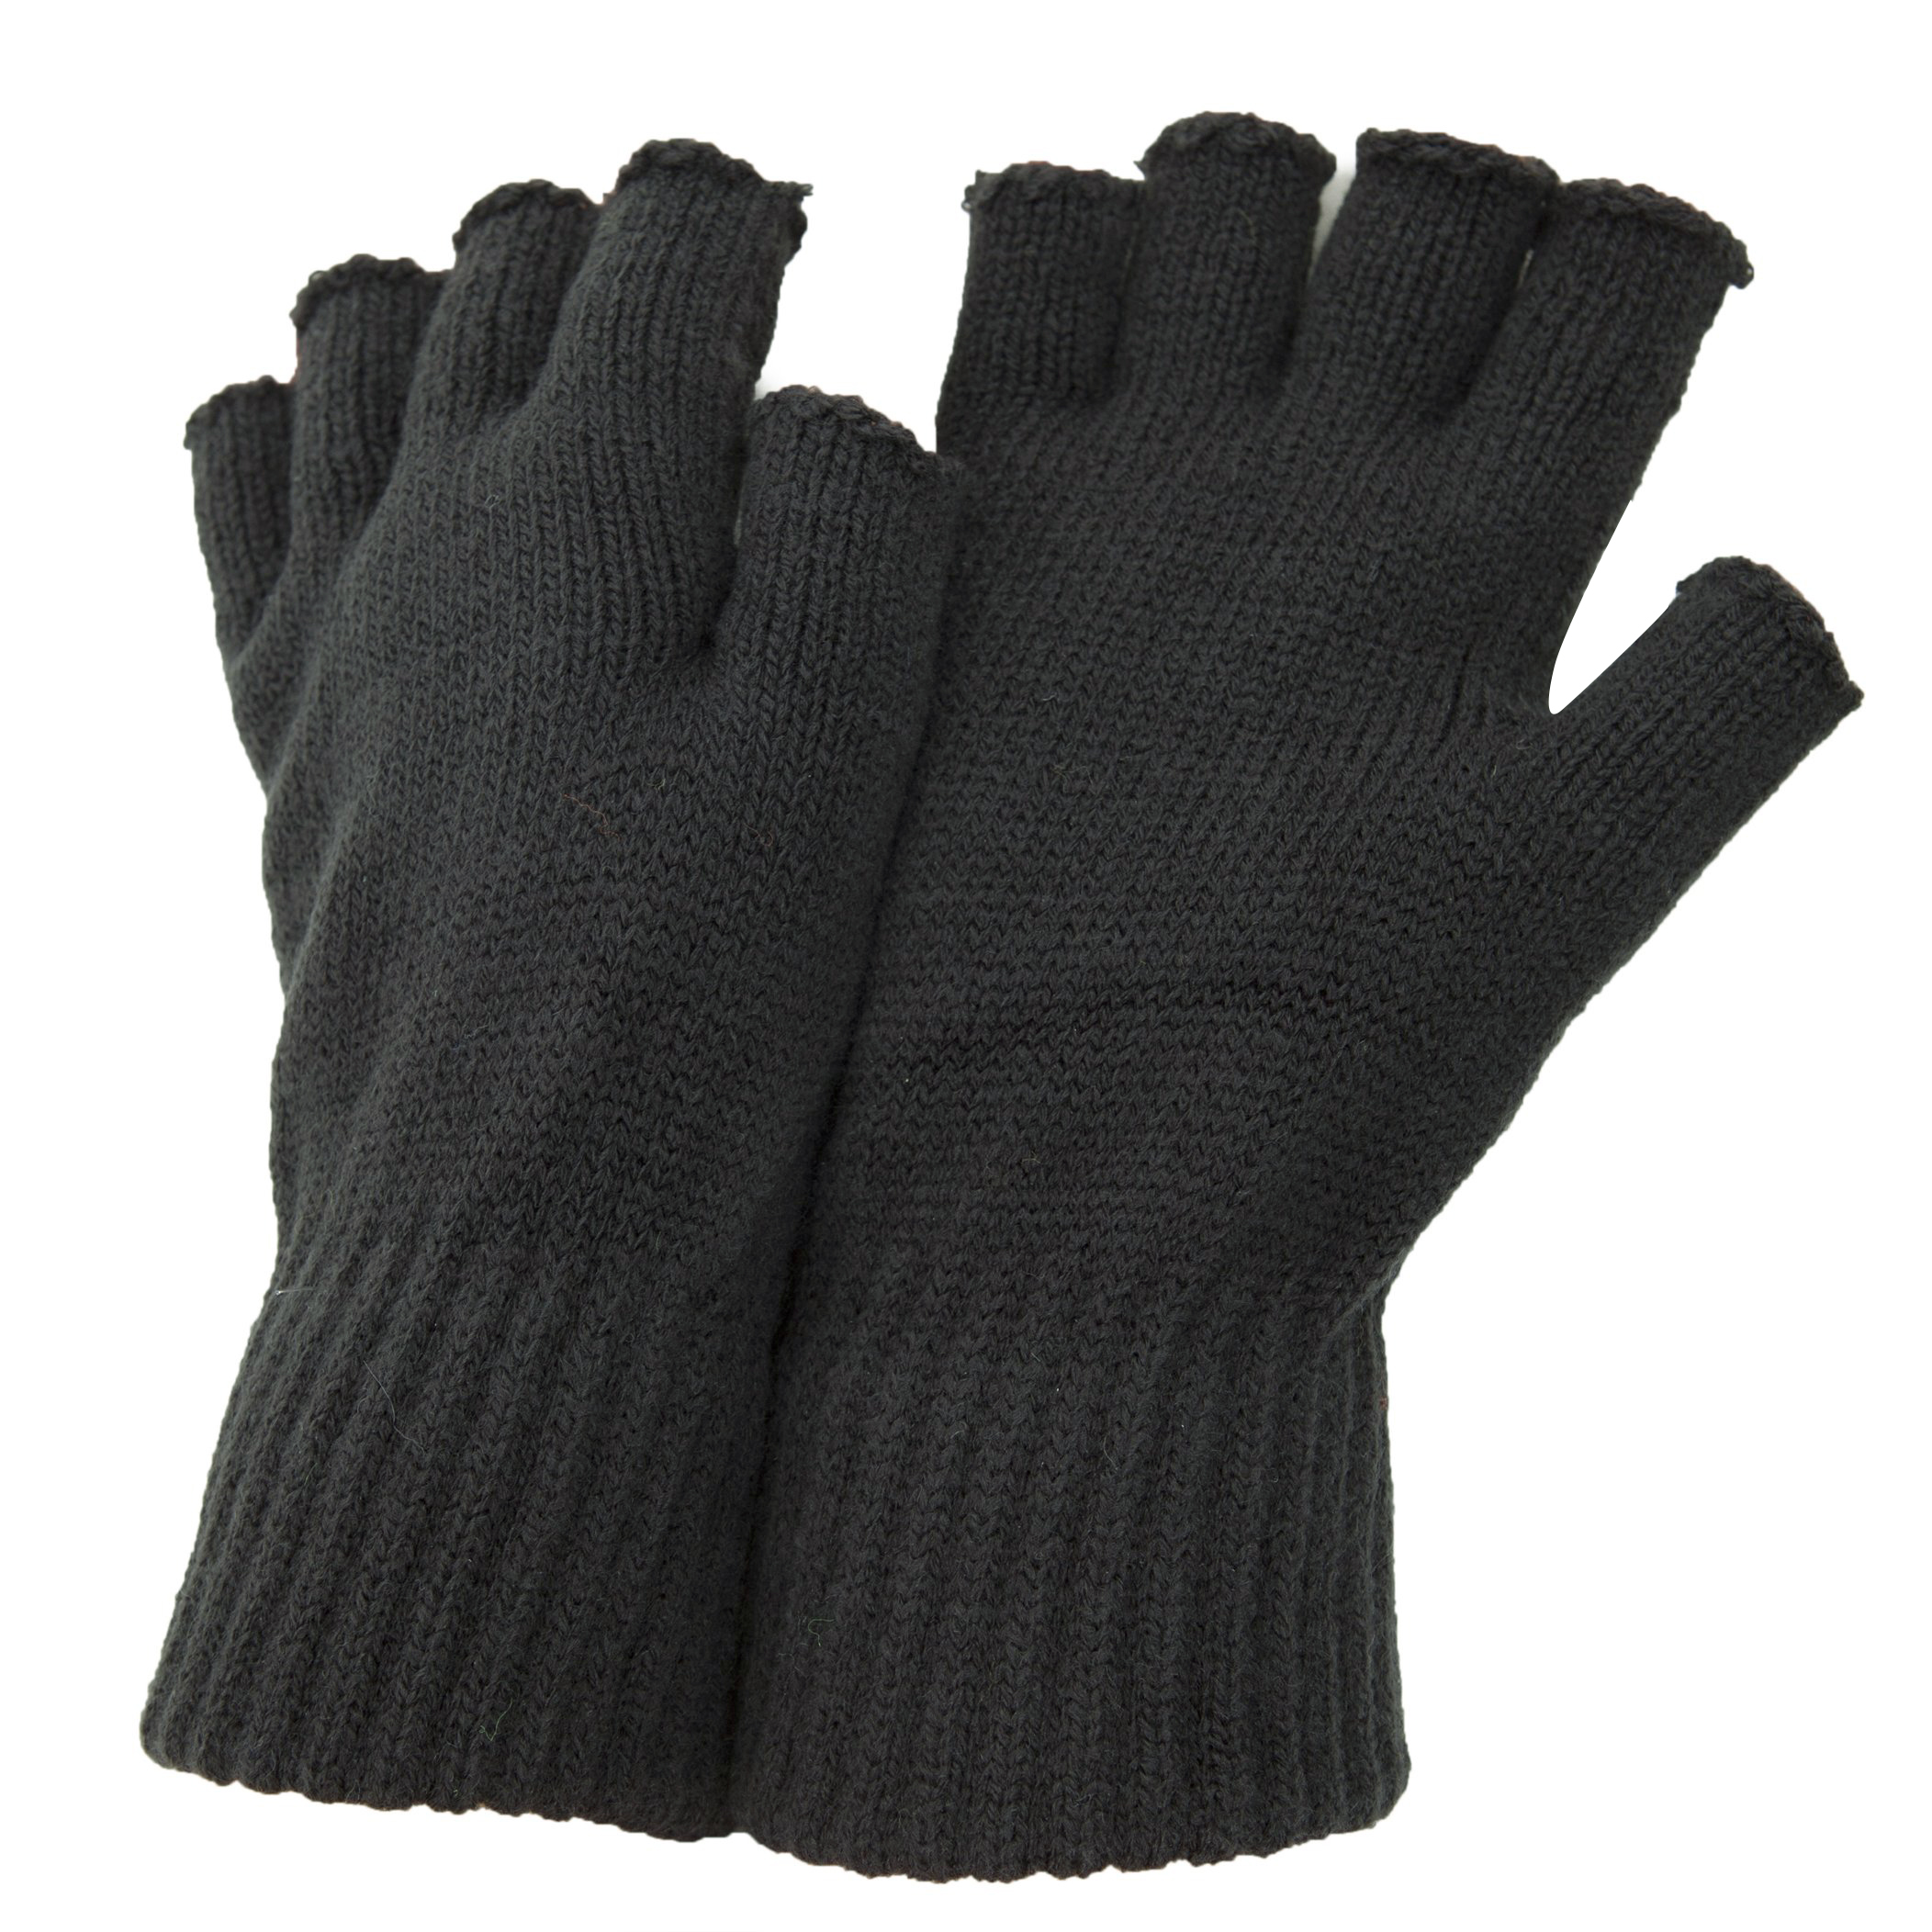 Shop gloves for women on sale with wholesale cheap price and fast delivery, and find more womens winter fingerless gloves, leather gloves & bulk gloves online with drop shipping.